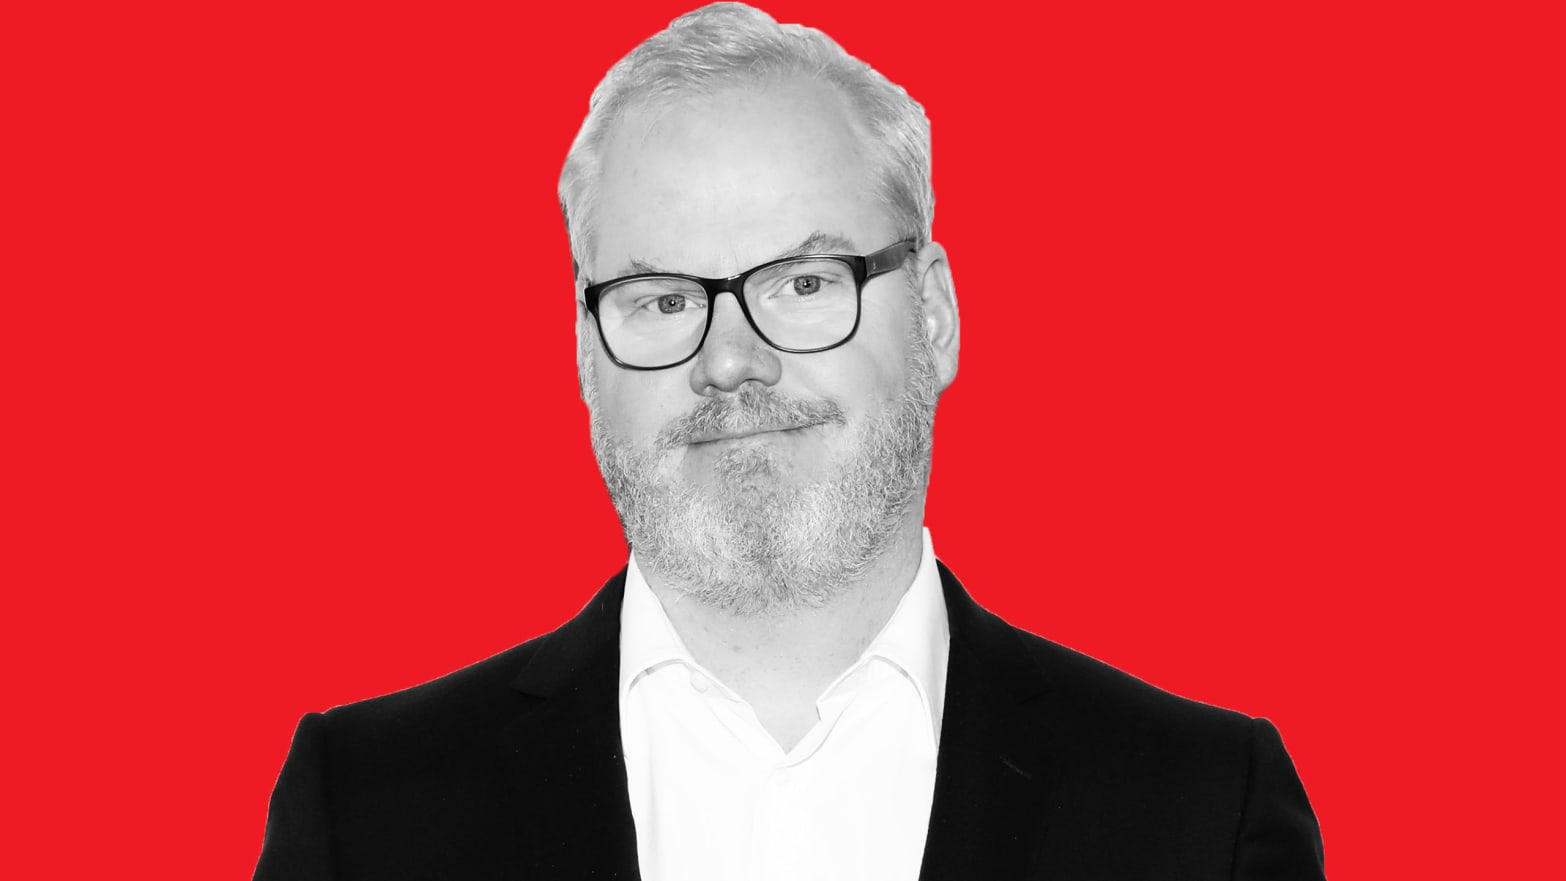 'The Last Laugh' Podcast: Why Jim Gaffigan Would Rather Joke About Brain Tumors Than Trump